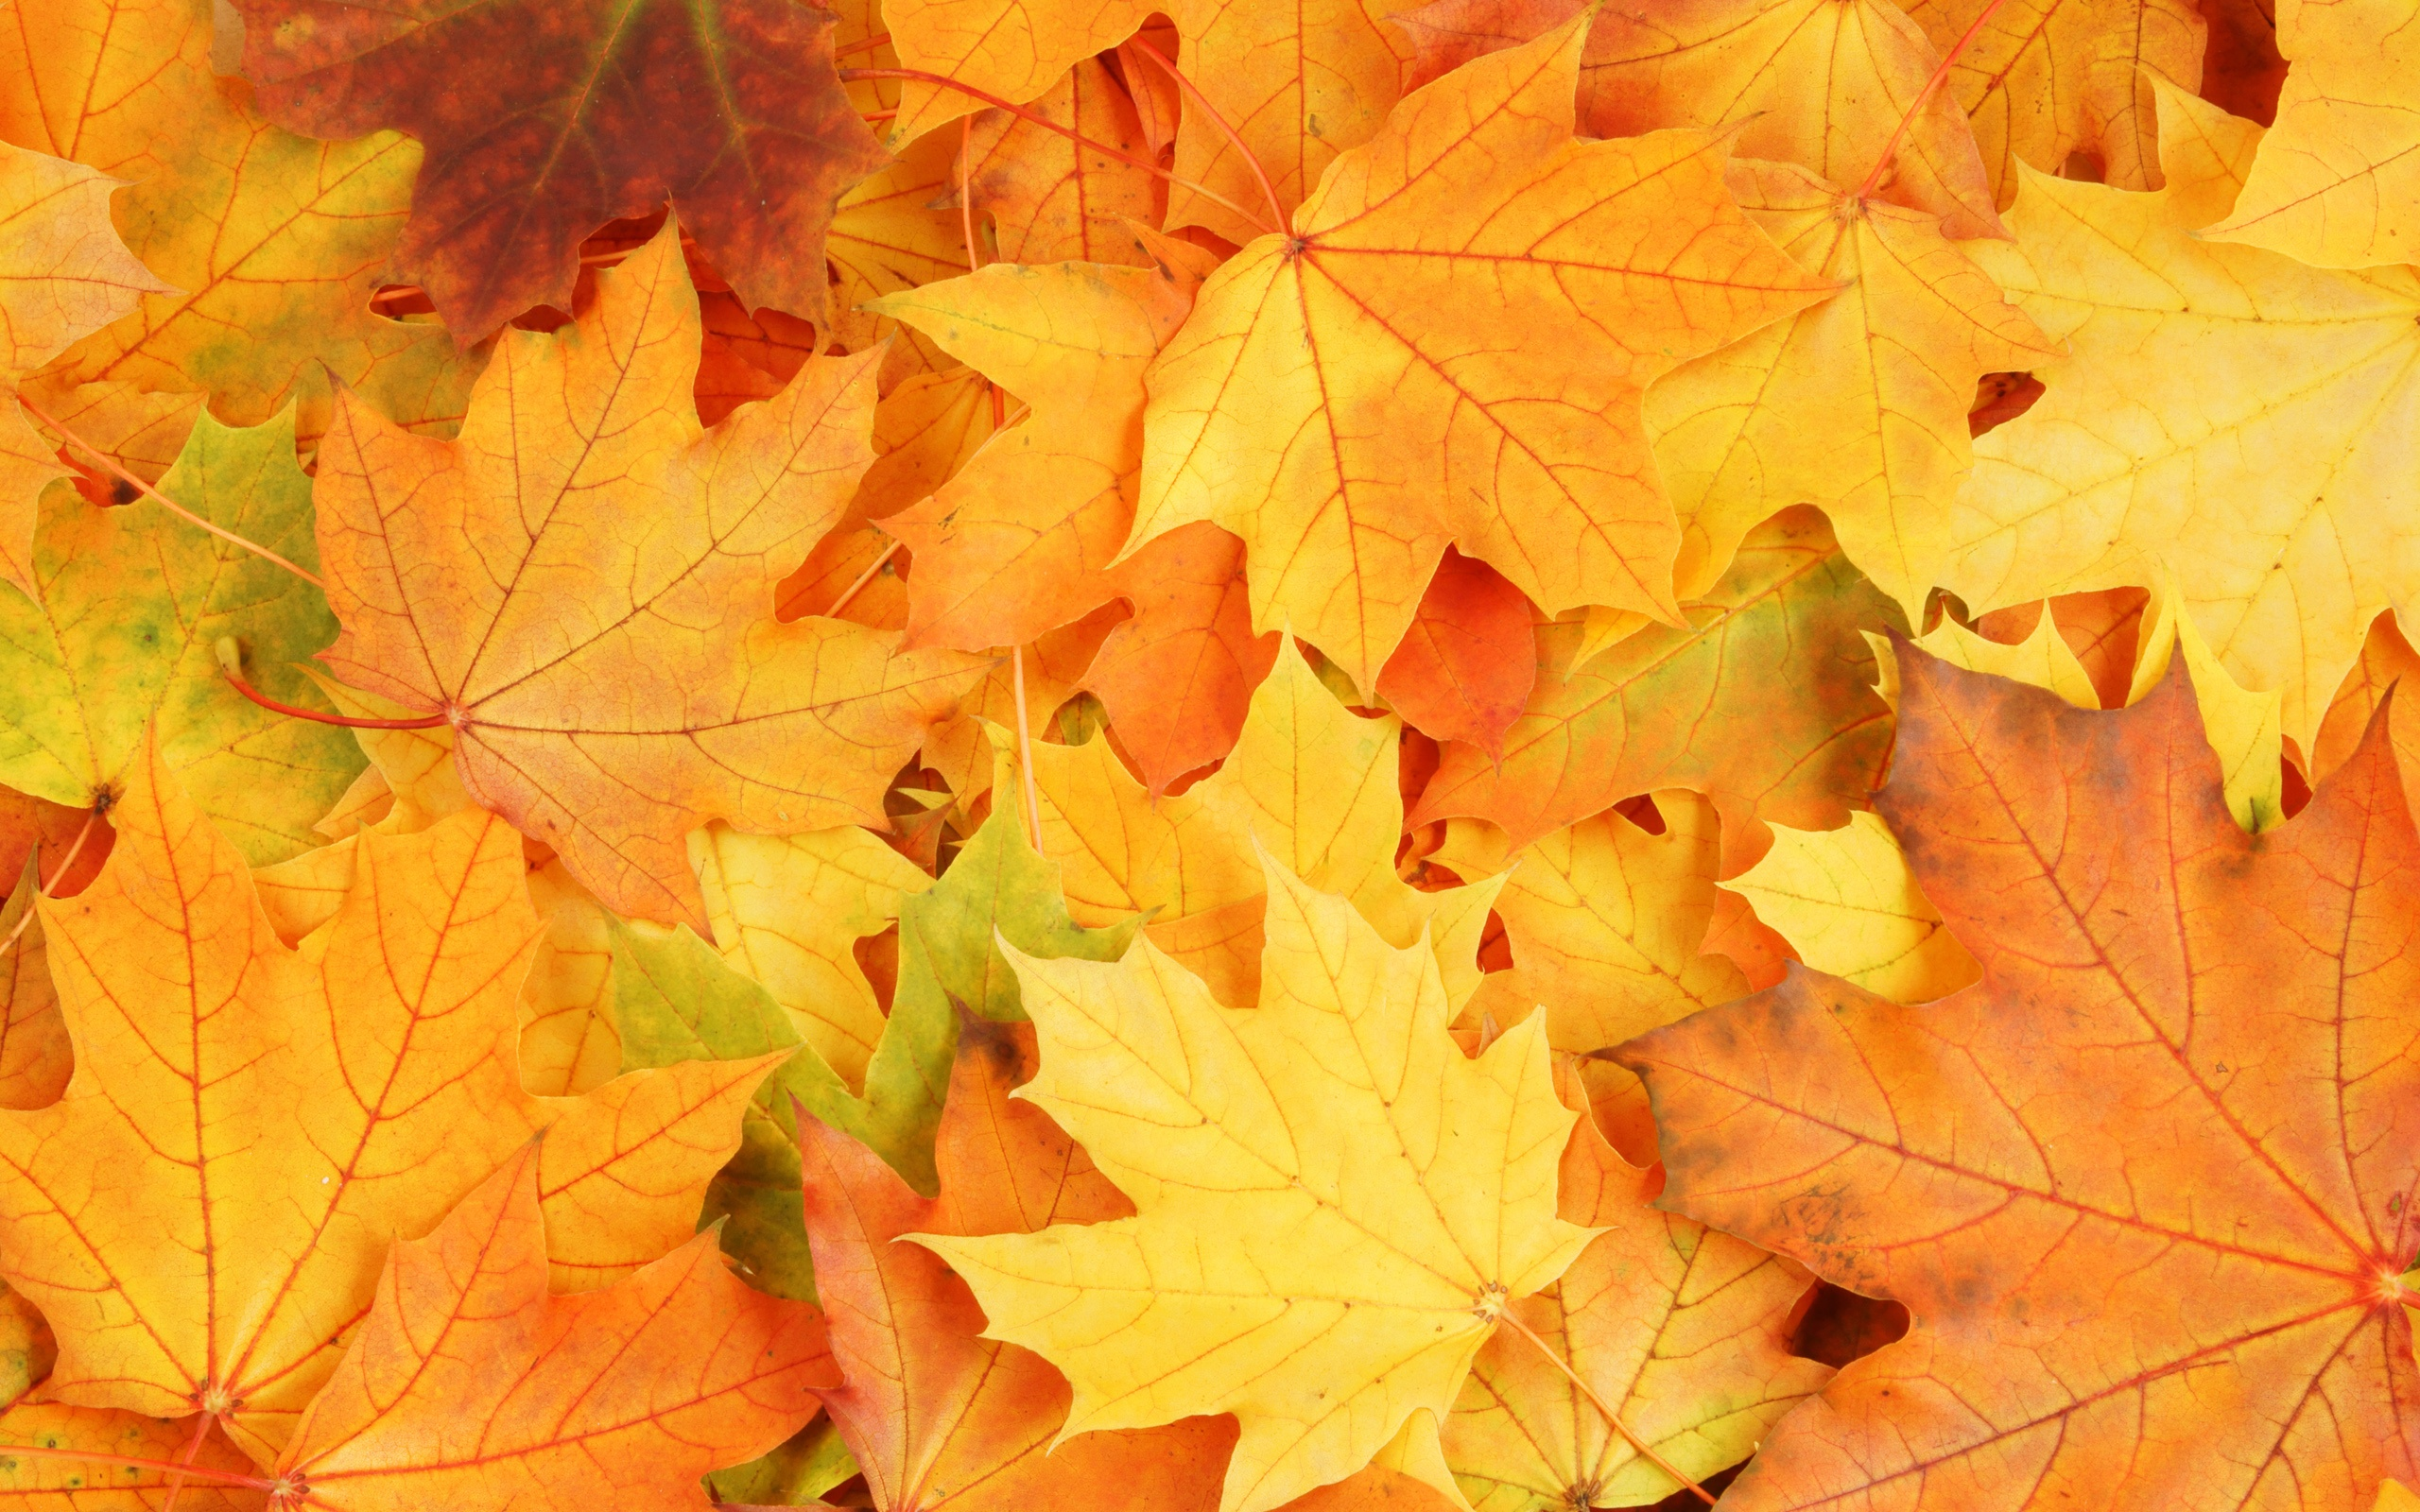 Fall Season Wallpapers For Iphone Wallpaper Autumn Season Yellow Maple Leaves Fall All Over